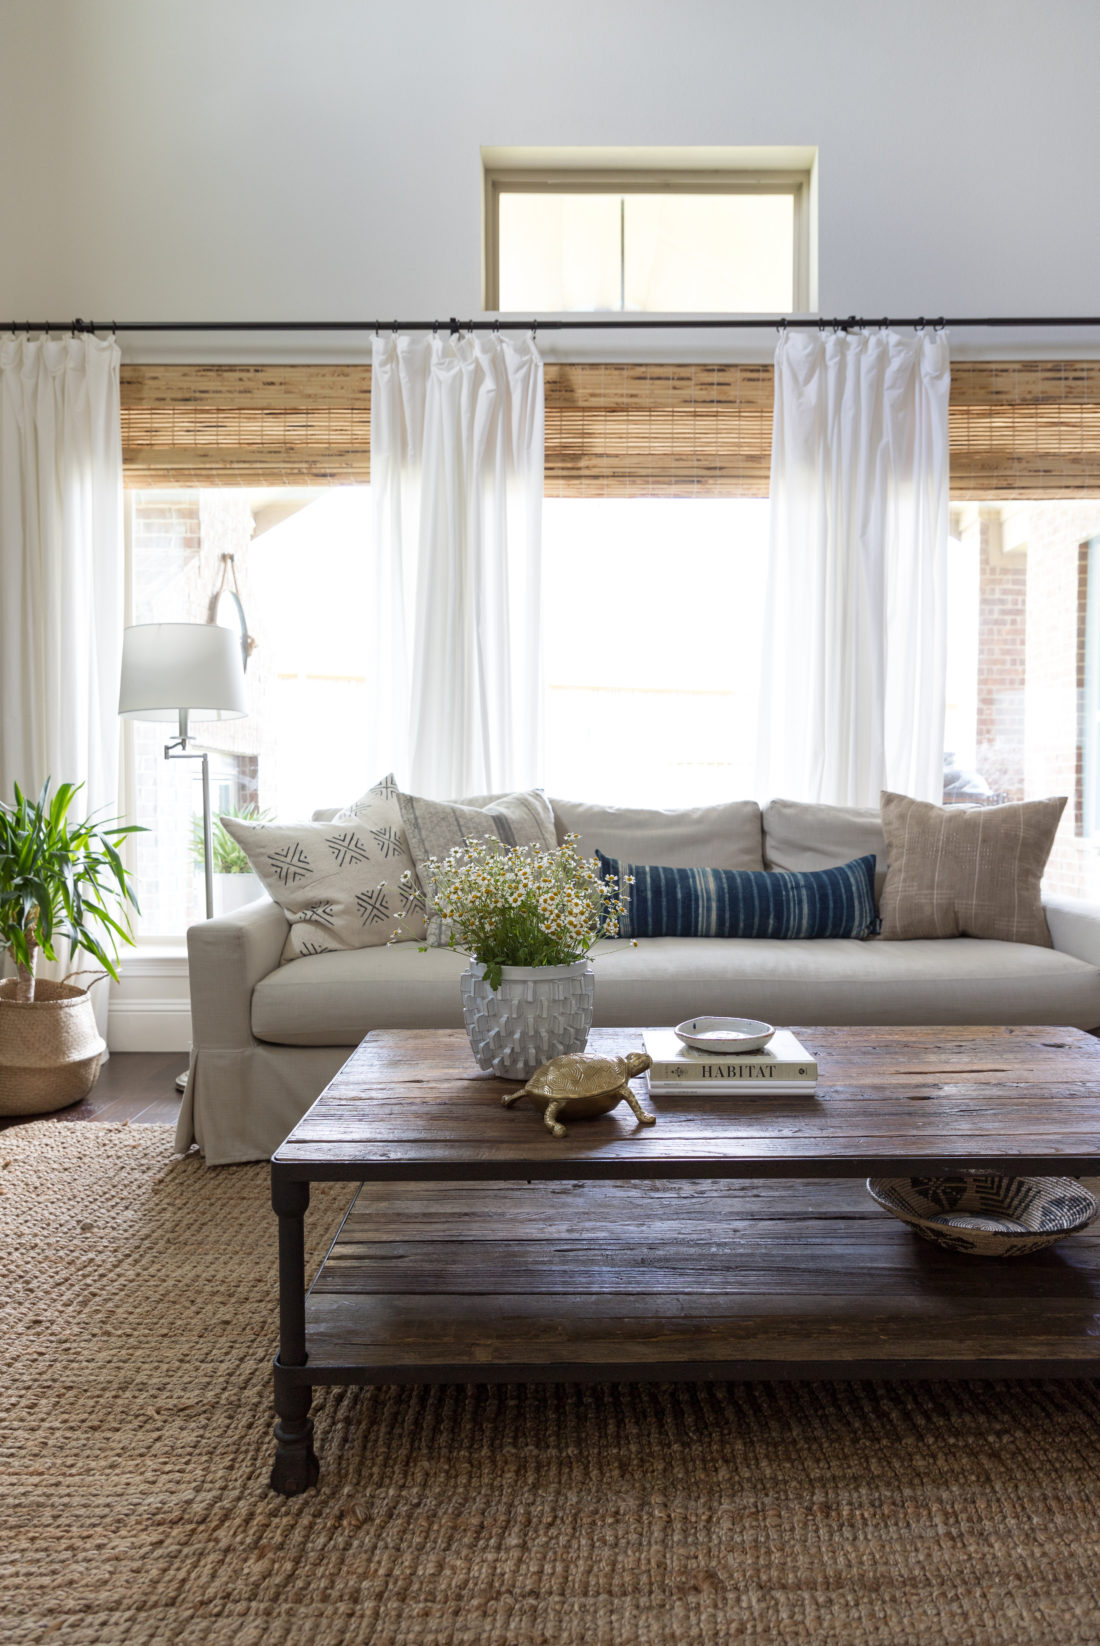 Restoration Hardware Dutch Industrial Coffee Table.Something Different Summer Home Tour Crazy Wonderful